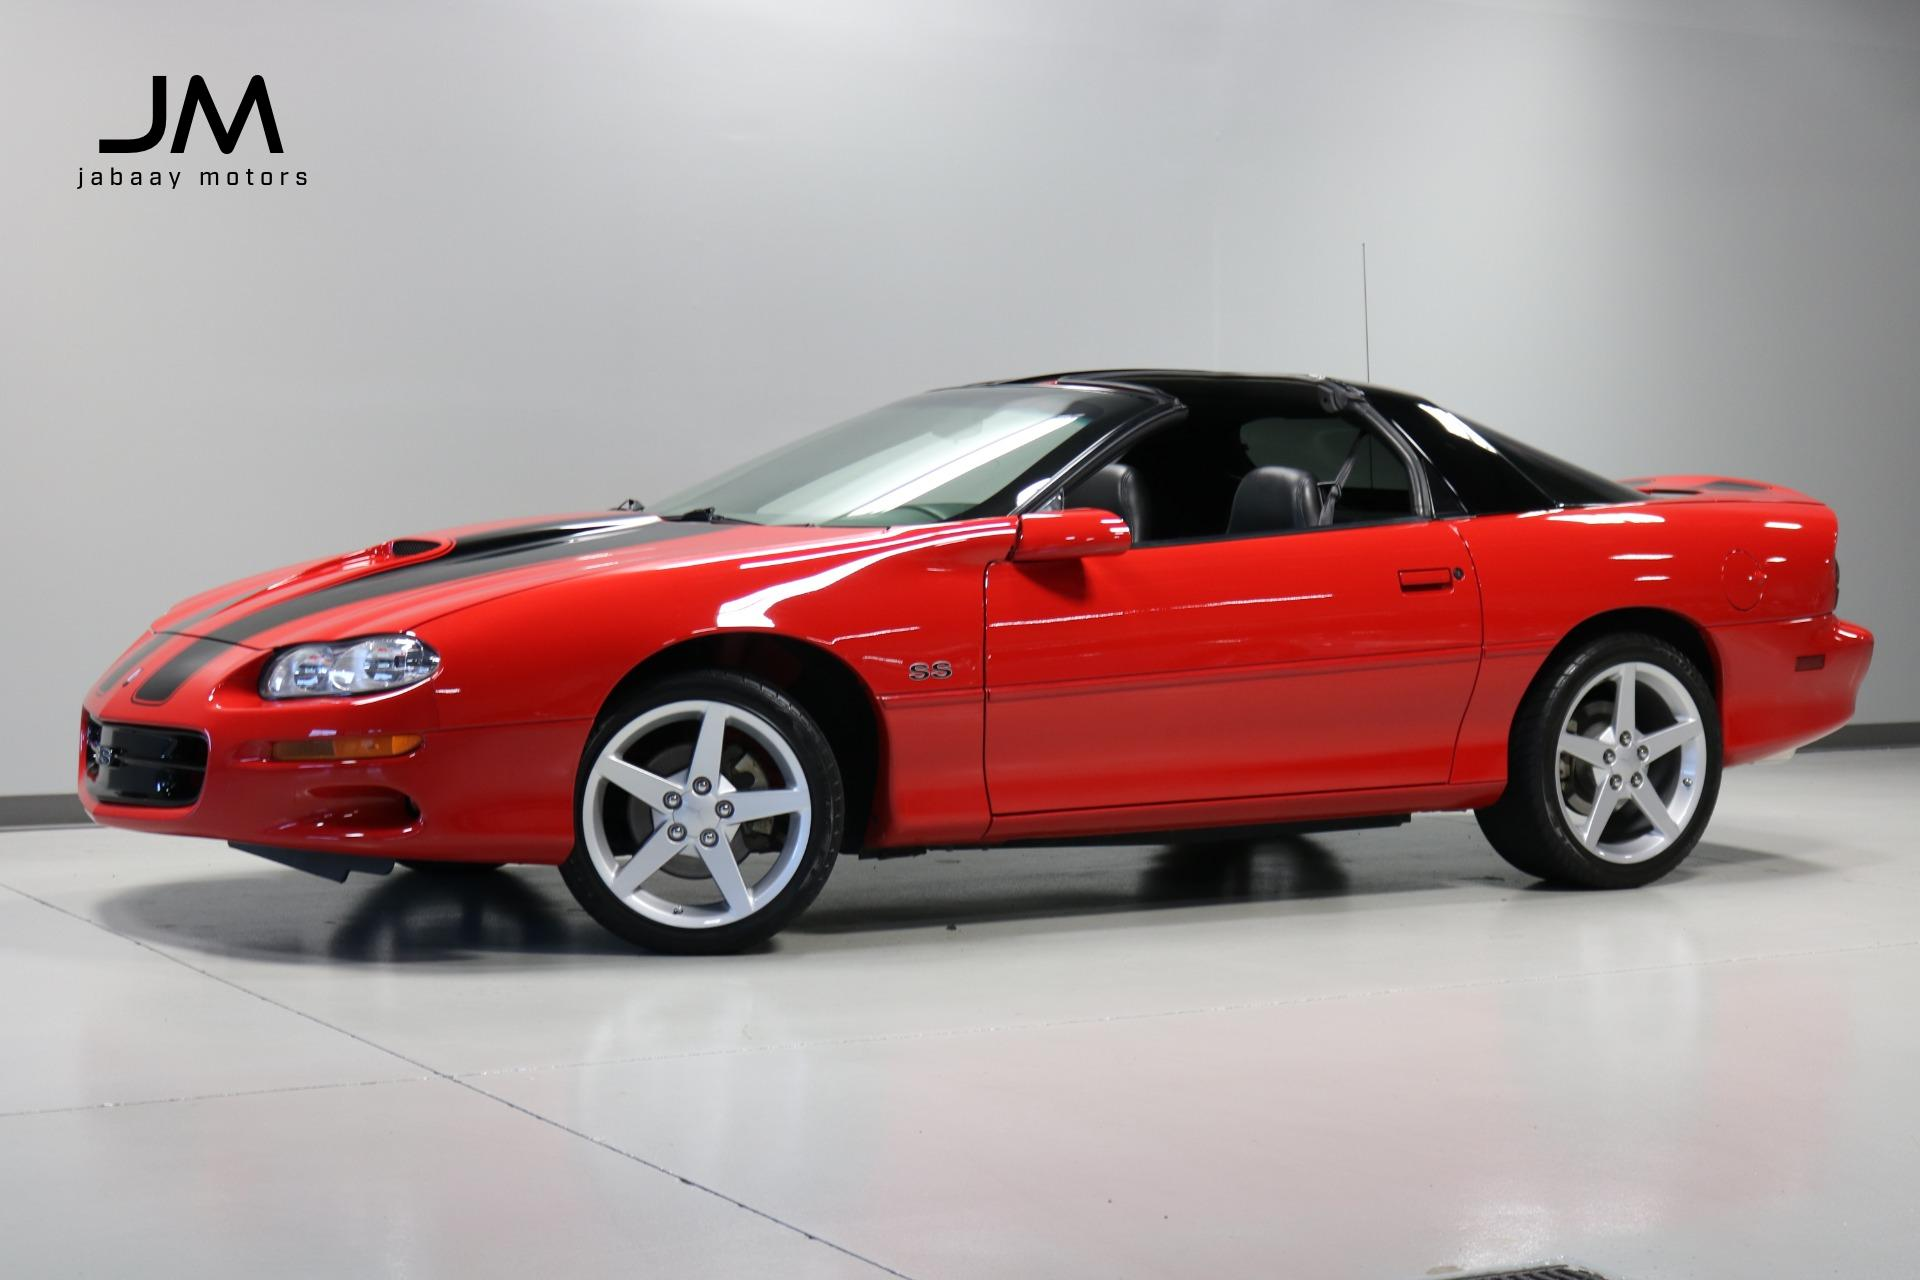 used 2001 chevrolet camaro ss for sale sold jabaay motors inc stock jm7256 used 2001 chevrolet camaro ss for sale